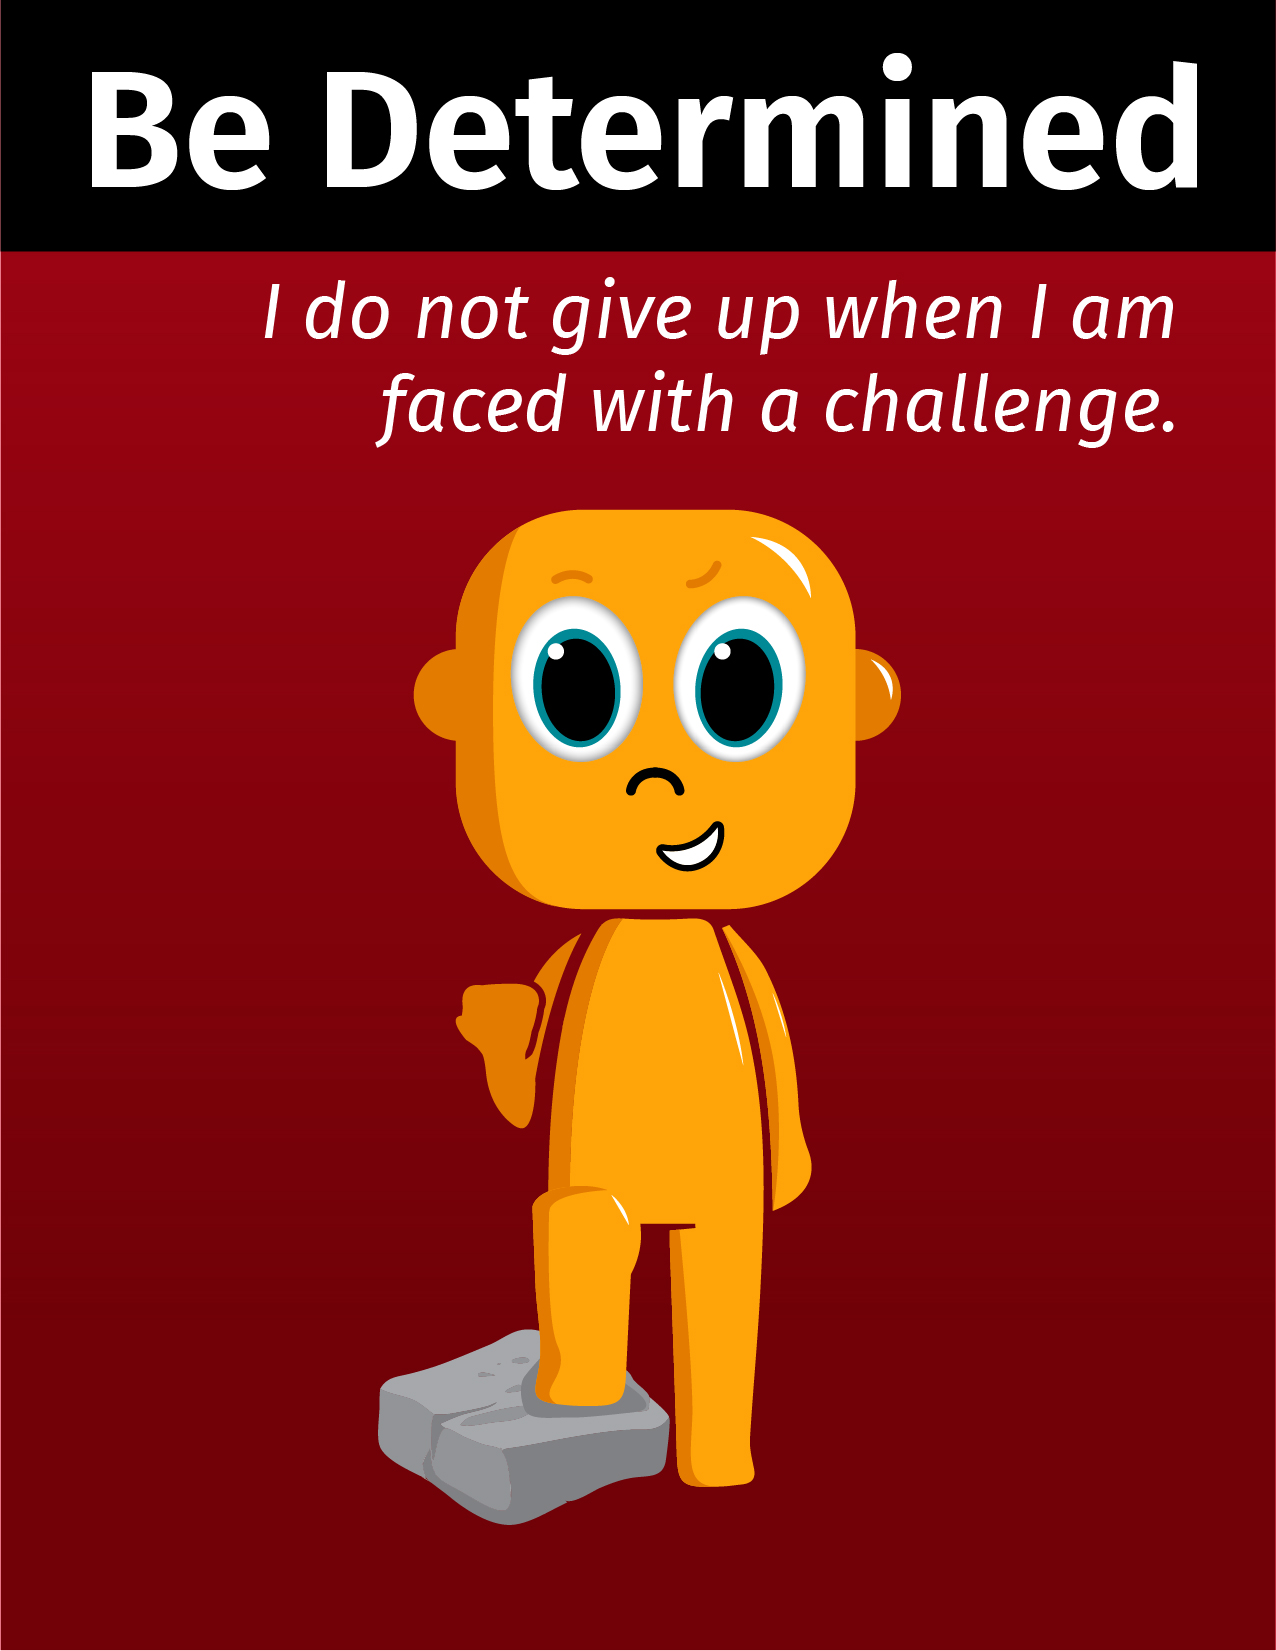 Graphical Learner being determined and stating I do not give up when I am faced with a challenge.